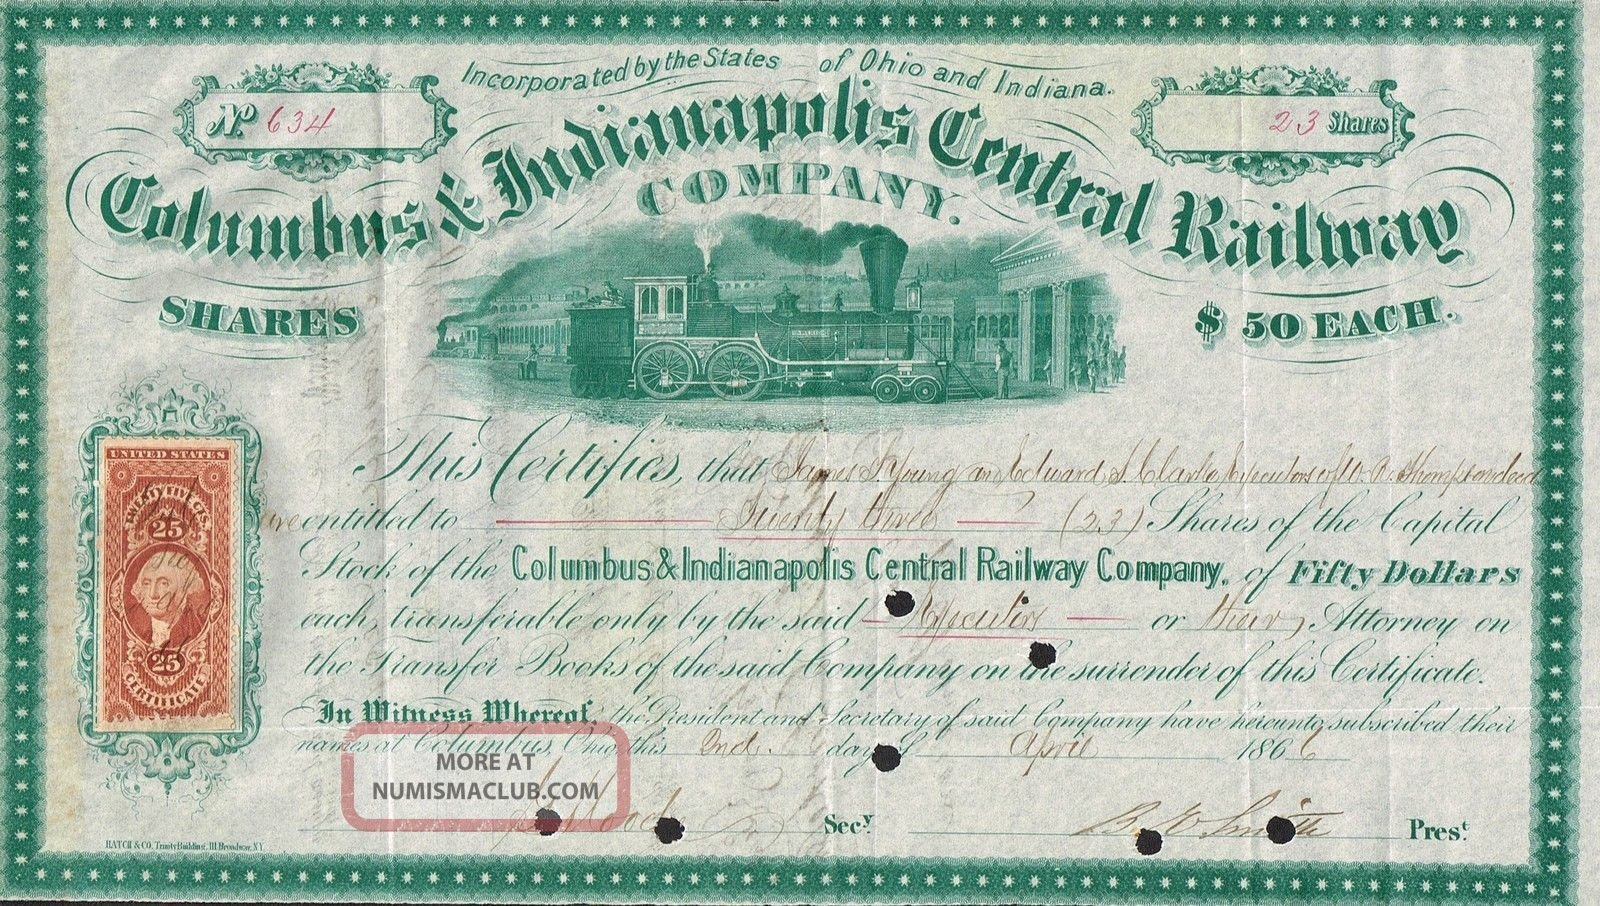 Usa Columbus & Indianapolis Central Railway Company Stock Certificate 1866 World photo